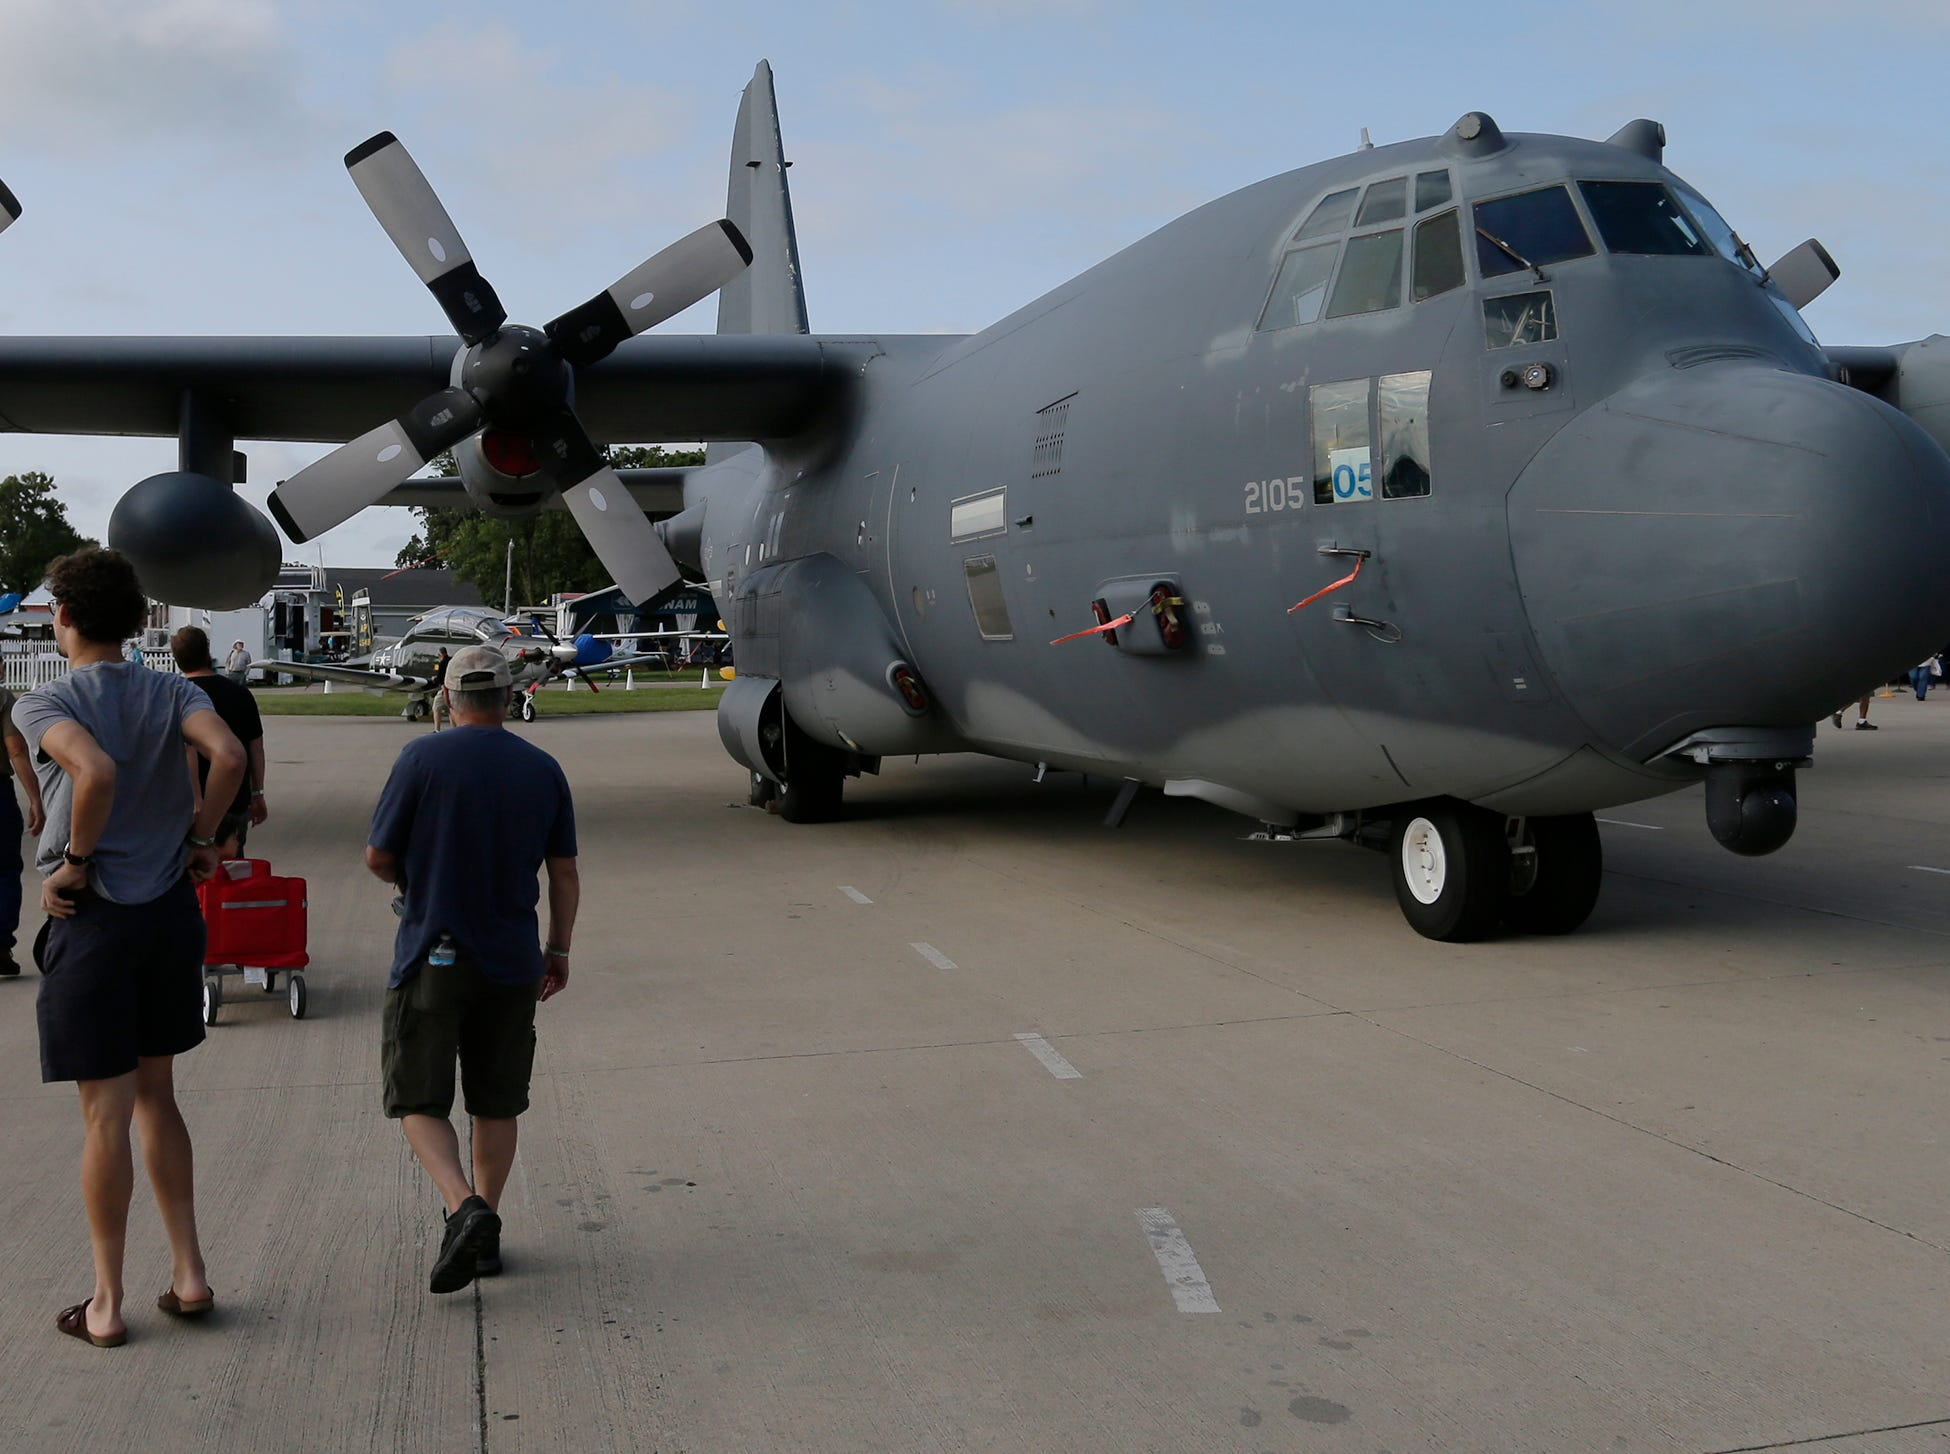 The KC-130H is on static display in Boeing plaza as part of the 70th anniversary of the Air Force Reserve Command, Friday, July 27, 2018, in Oshkosh, Wis.  The 66th annual Experimental Aircraft Association Fly-In Convention, AirVenture 2018 draws over 500,000 people and over 10,000 planes from more than 70 nations annually to the area.  The convention runs through July 29.Joe Sienkiewicz/USA Today NETWORK-Wisconsin